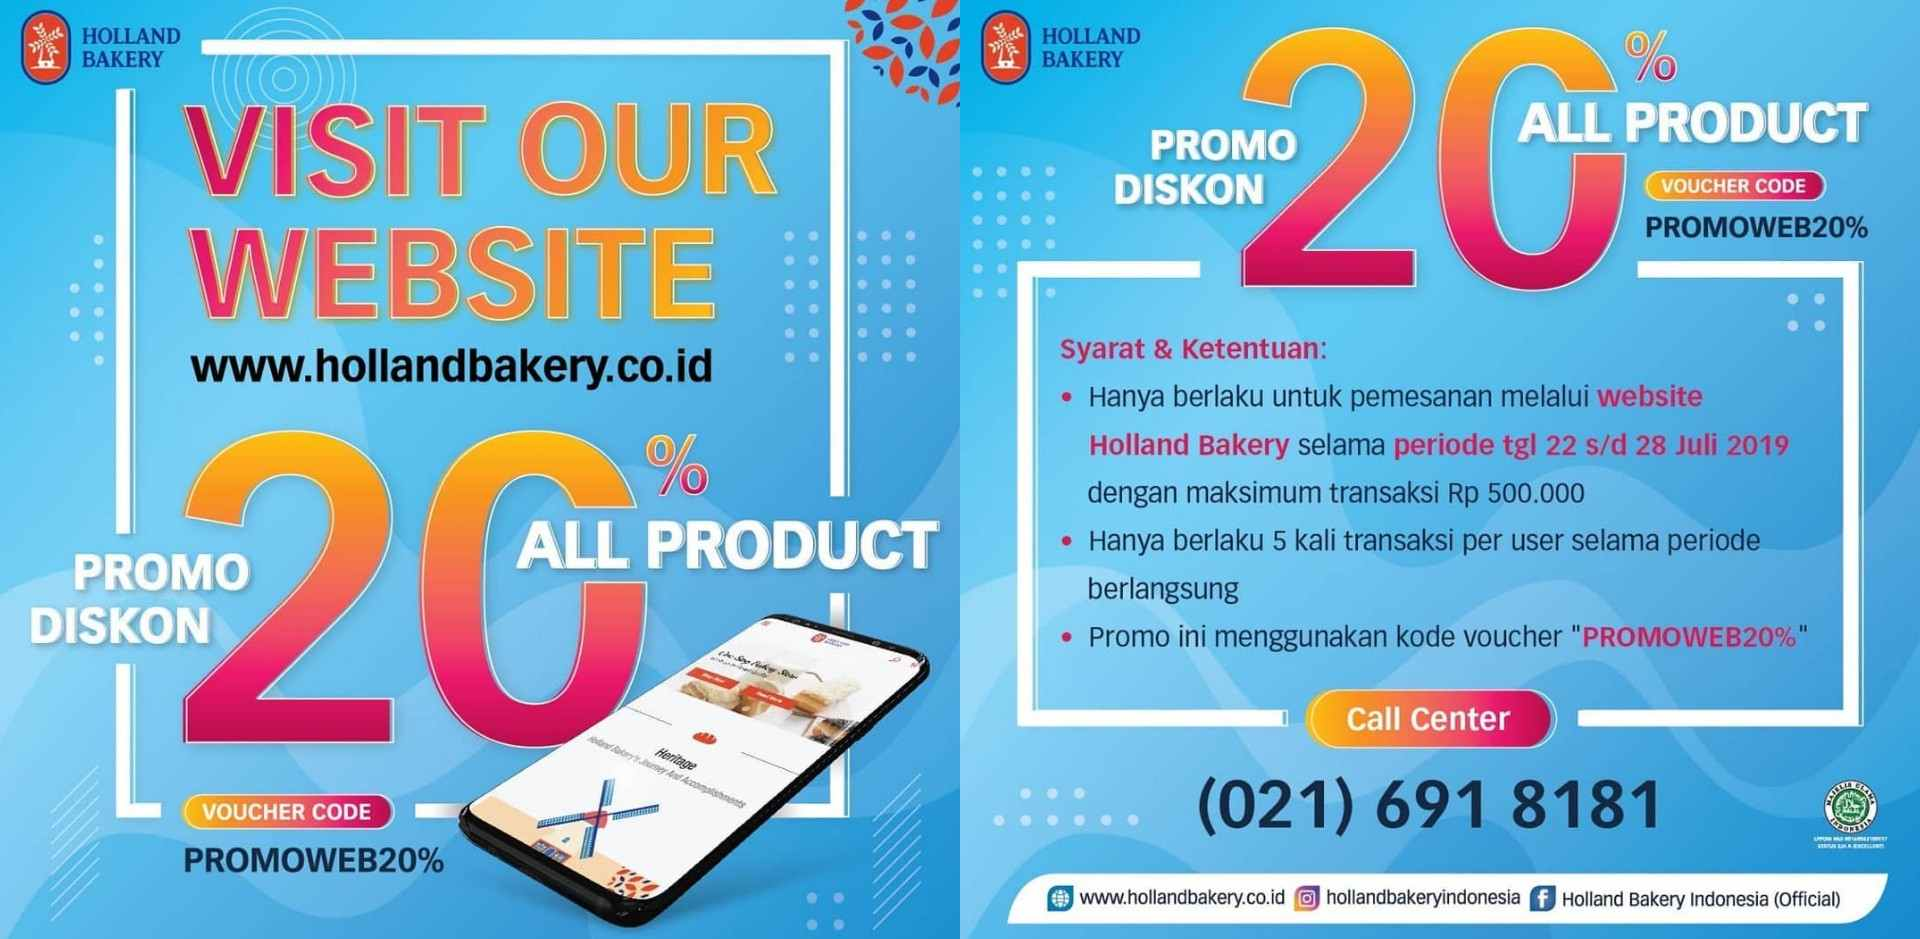 Diskon HOLLAND BAKERY Promo DISKON 20% via website